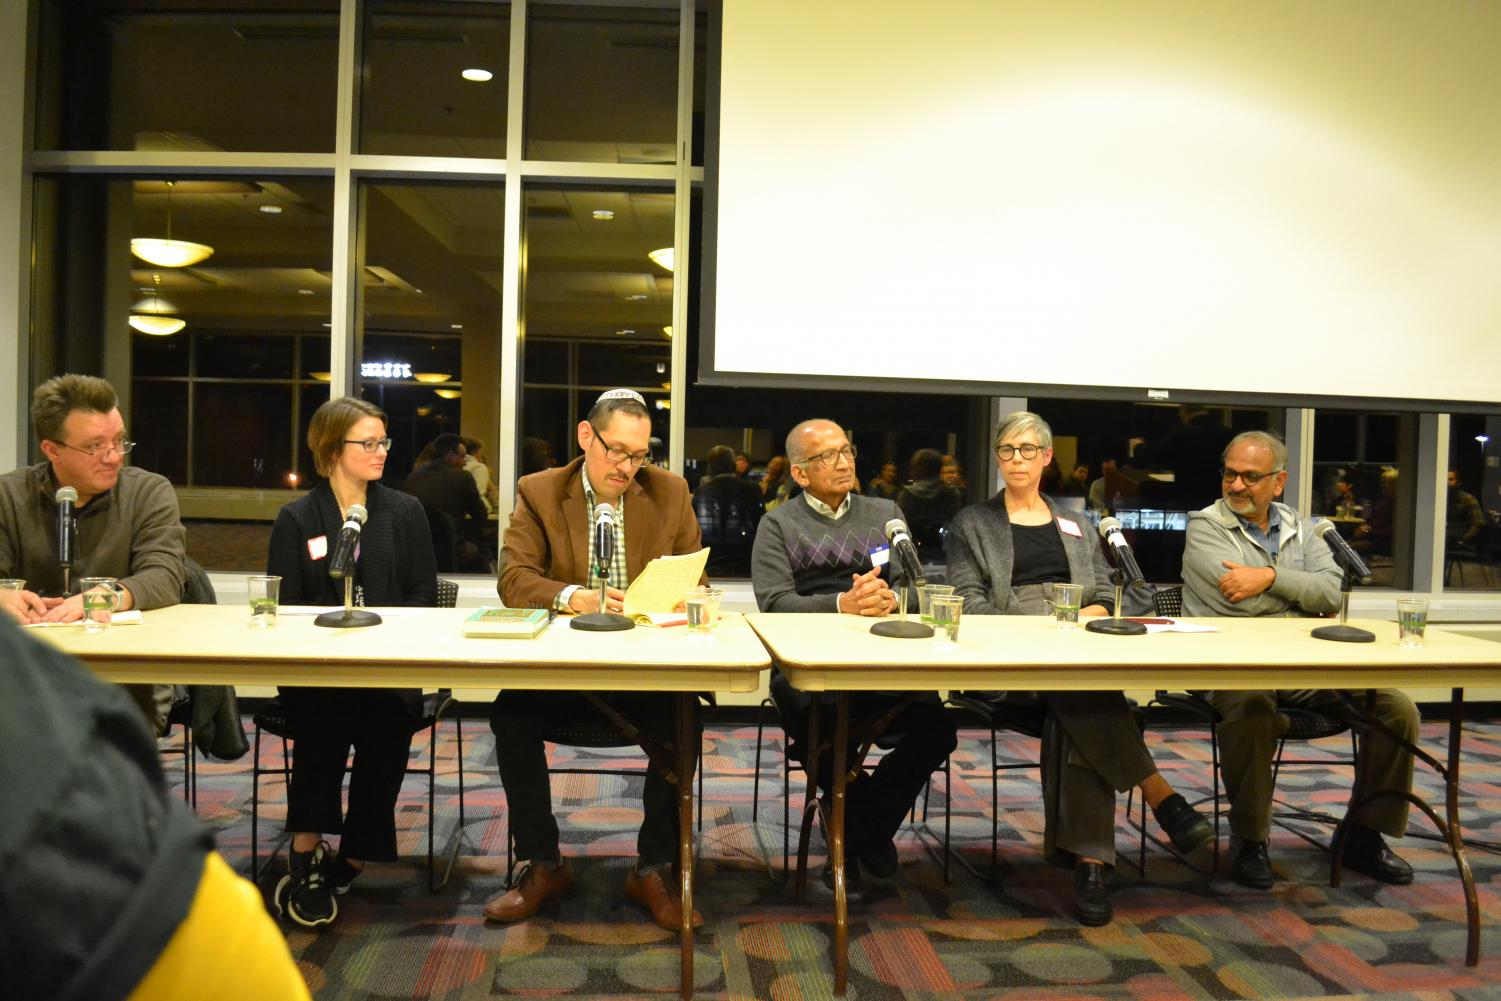 The six panelists present at the A Prayer for Compassion film showing had religious backgrounds in Christianity, Judaism, Buddhism, Hinduism, and Jainism.